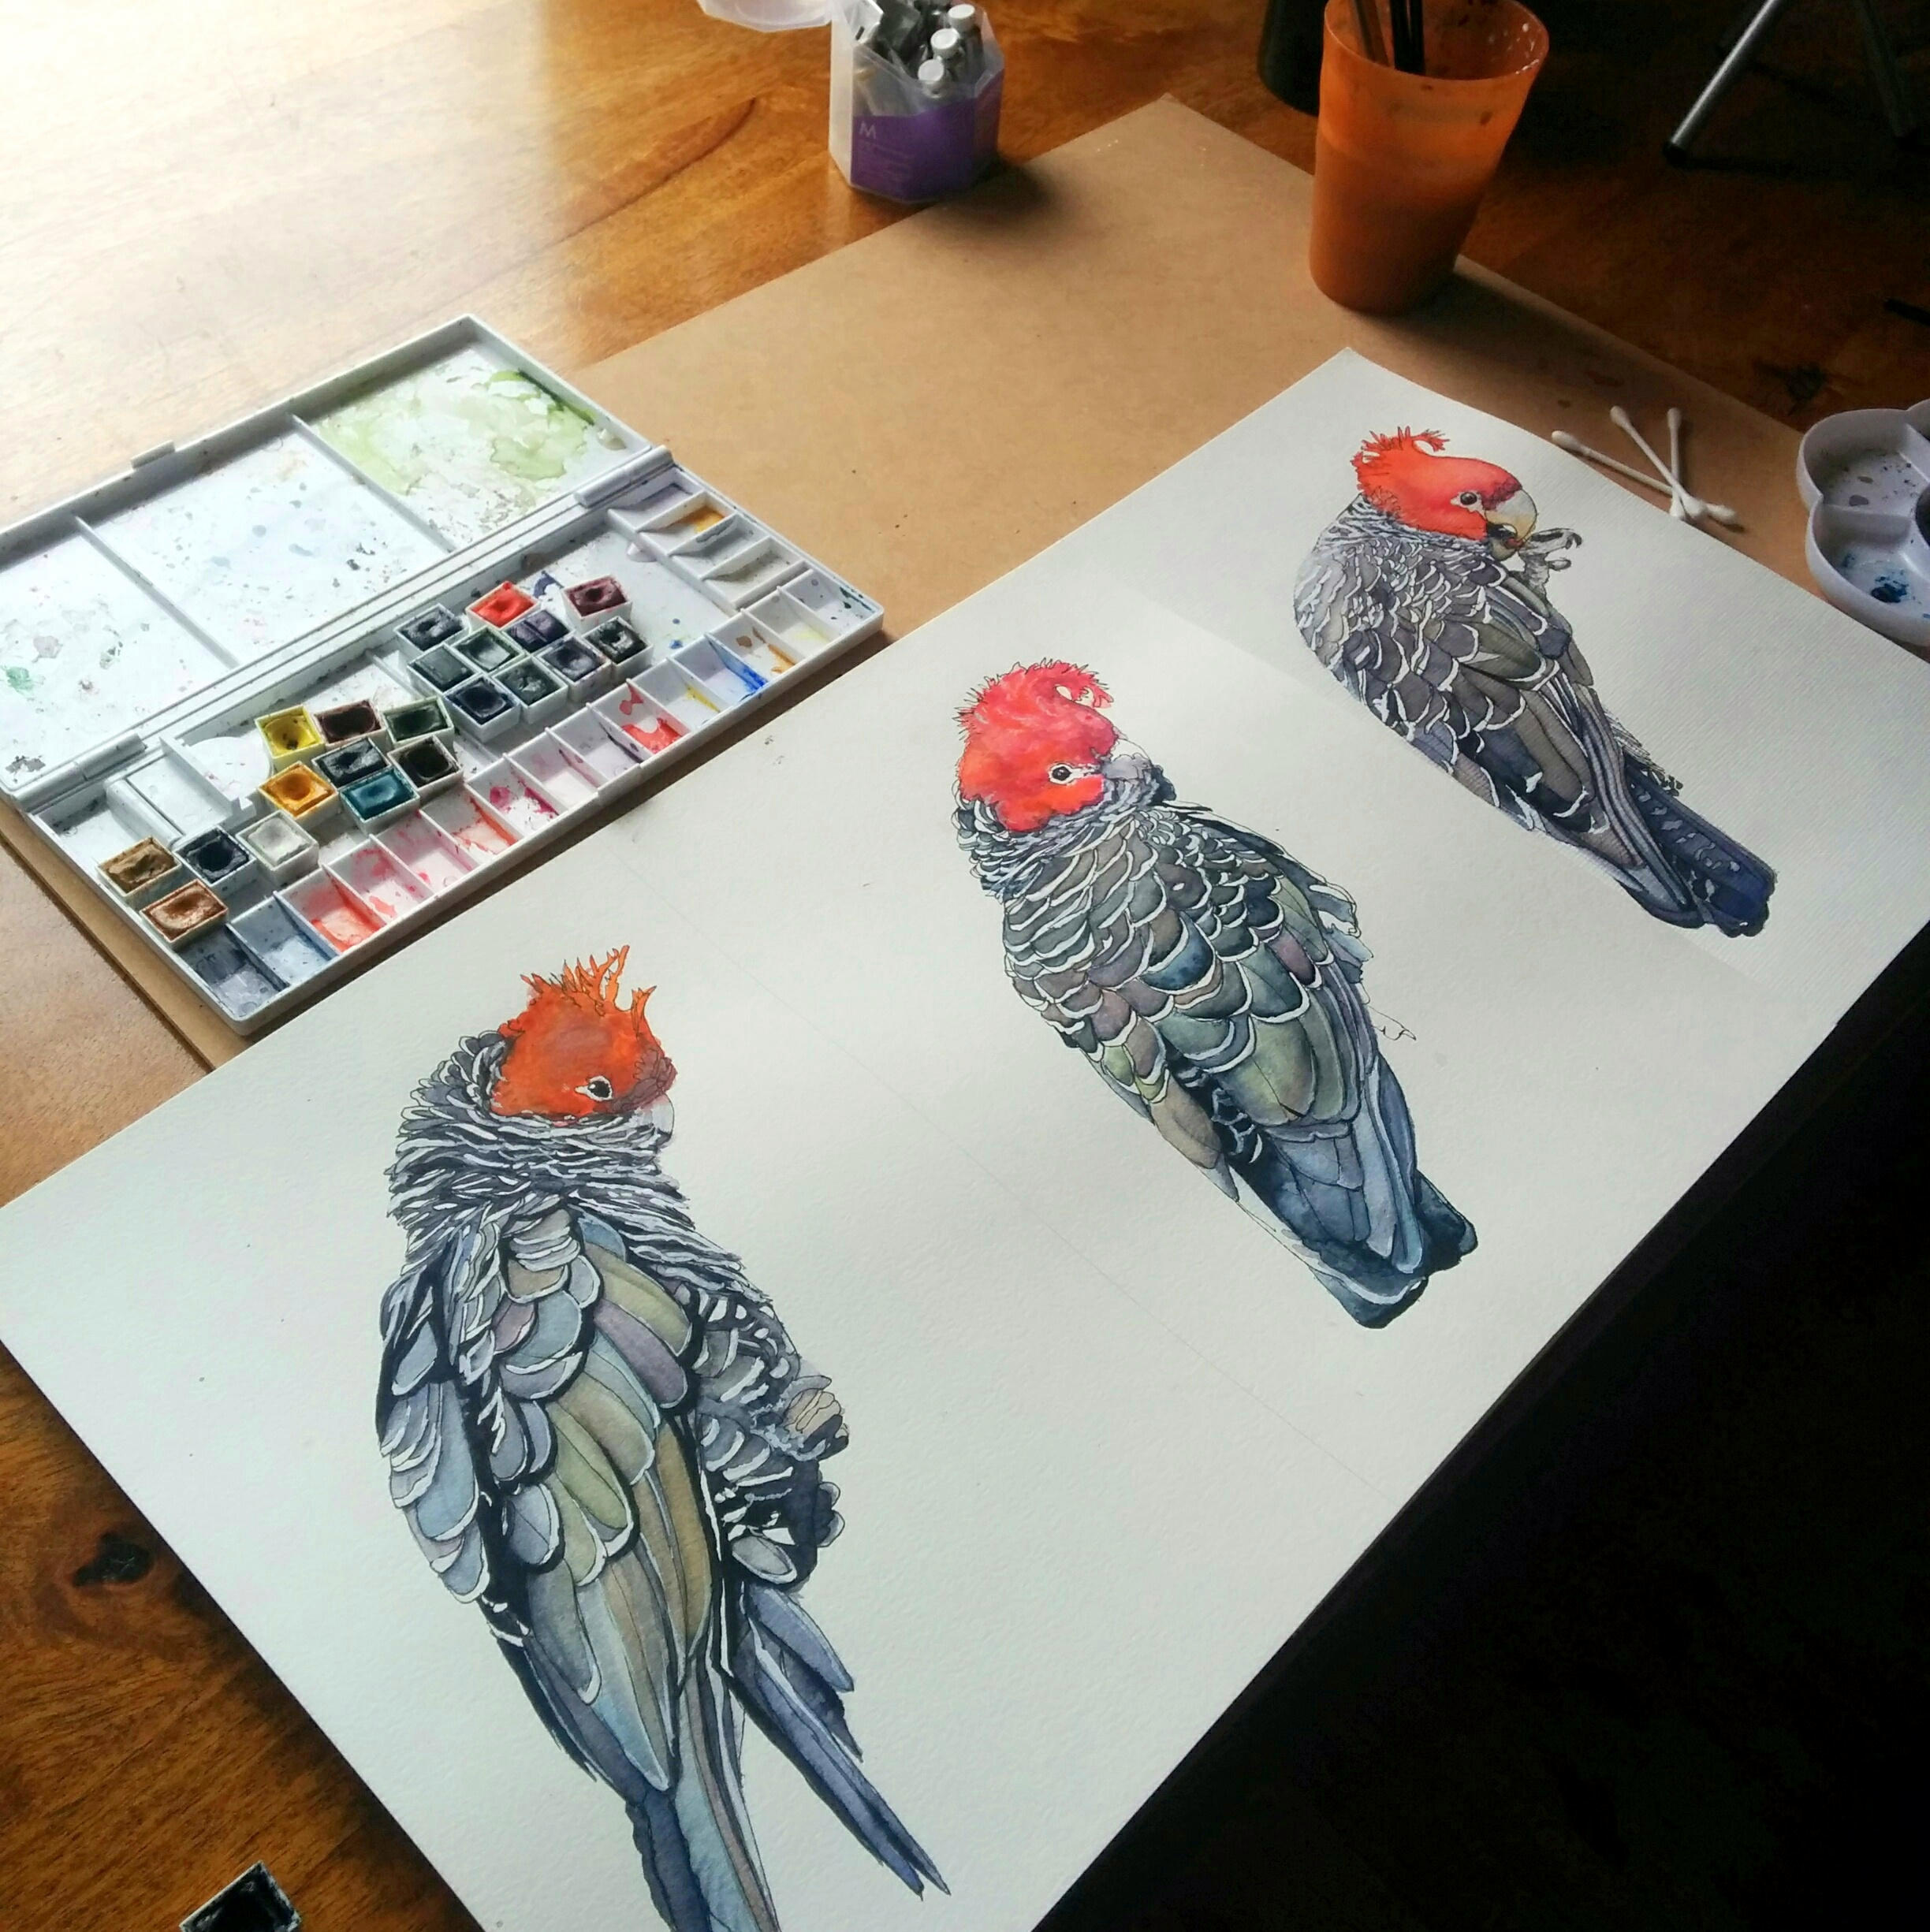 Join me in the studio  here  for the first chance to take home original artworks, insights into my painting & inspirations, and to help me decide what to work on next.